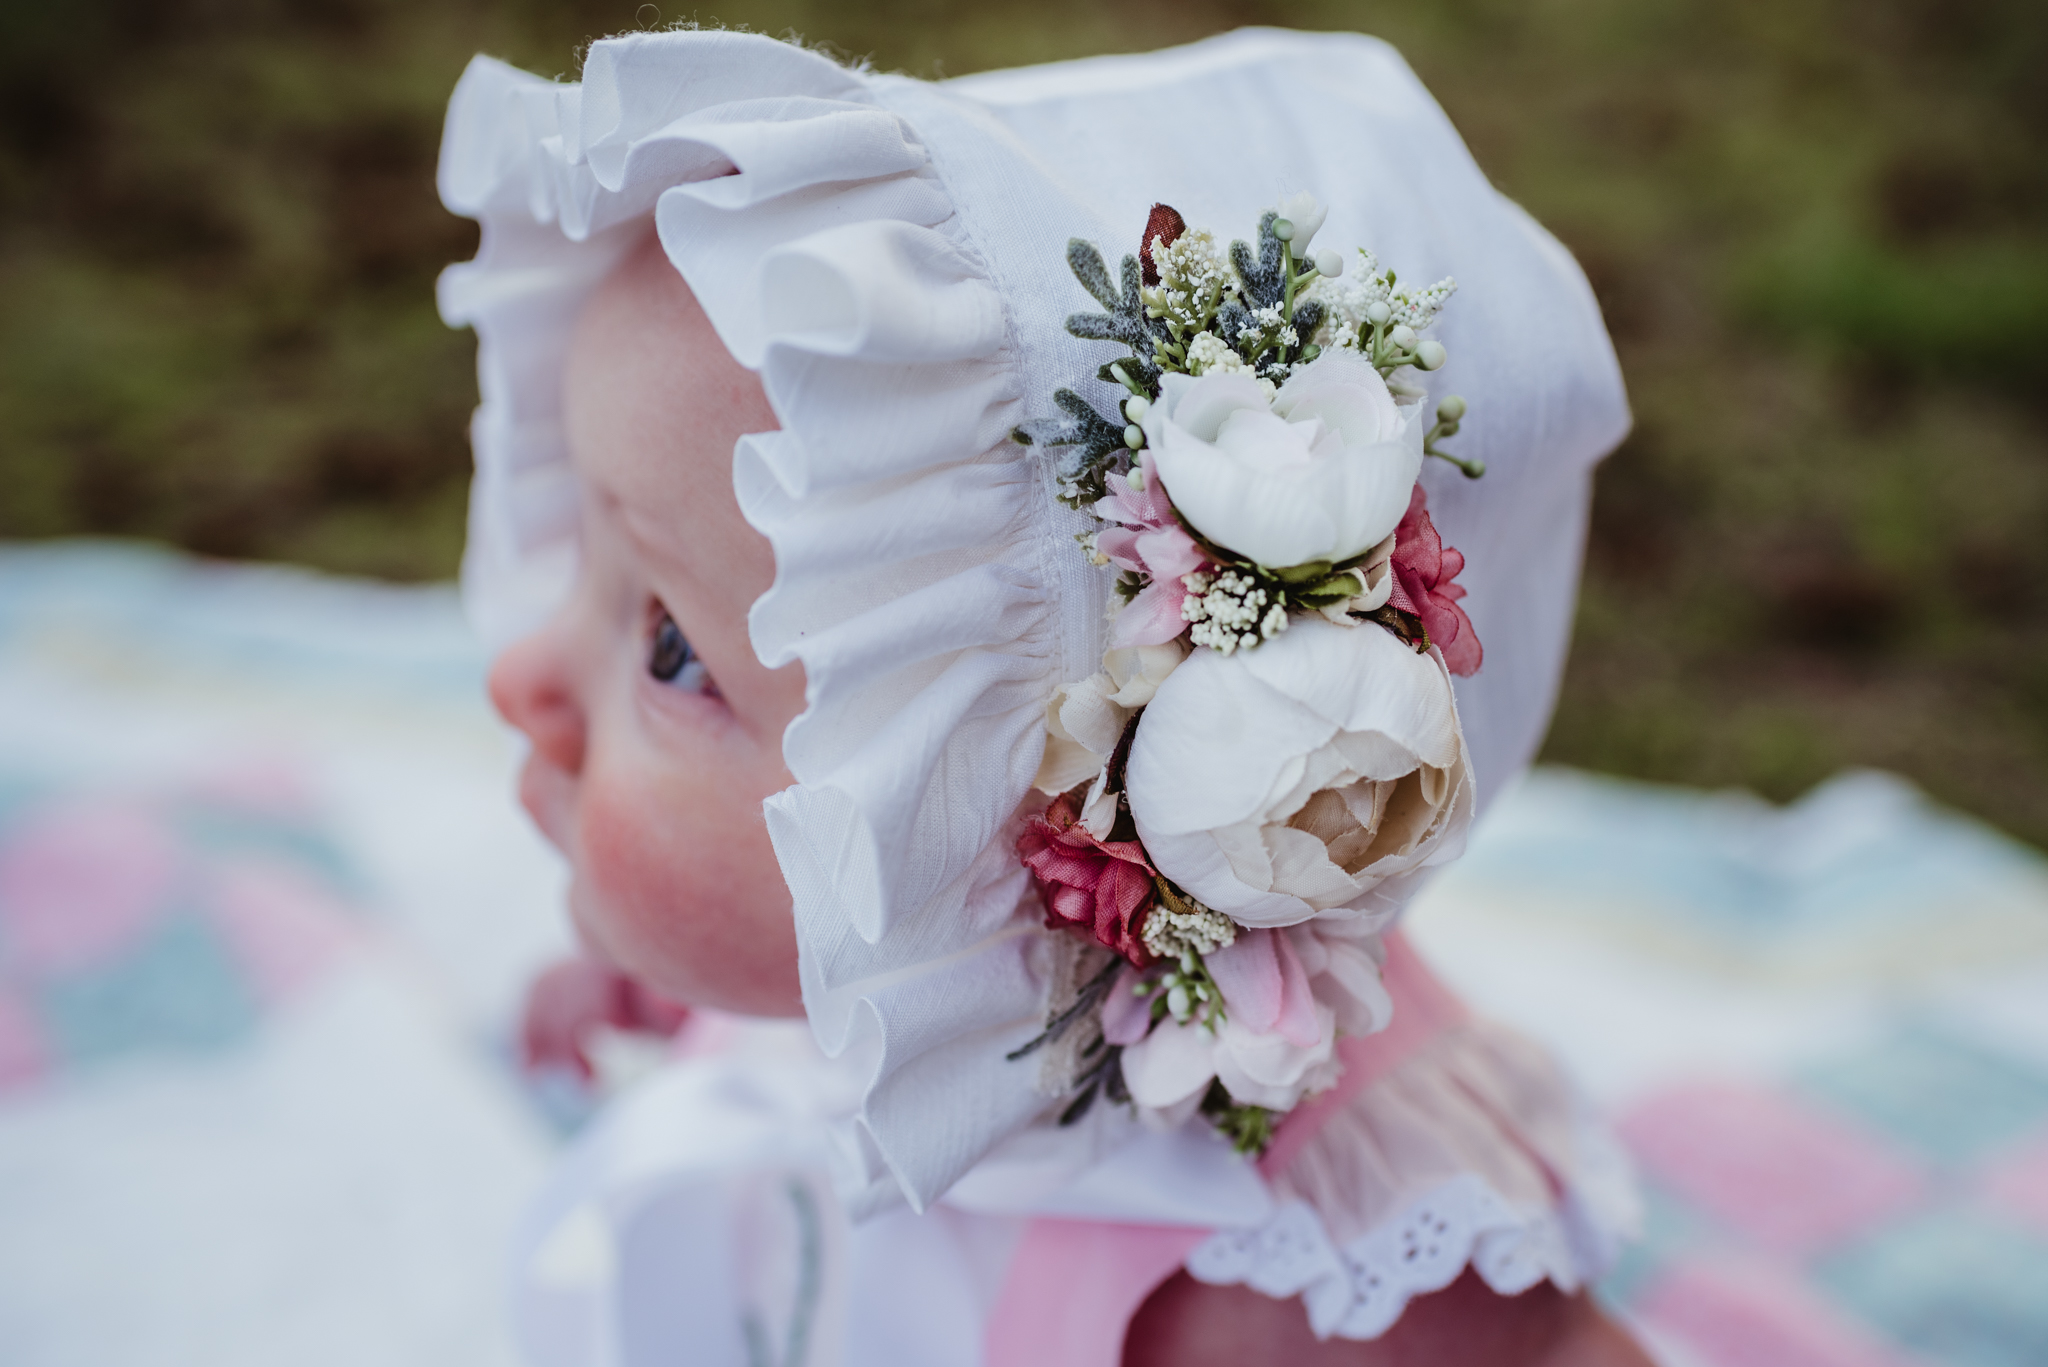 A close up of the baby's Easter bonnet during their family photos with Rose Trail Images at Horseshoe Farm Park in Wake Forest, NC.